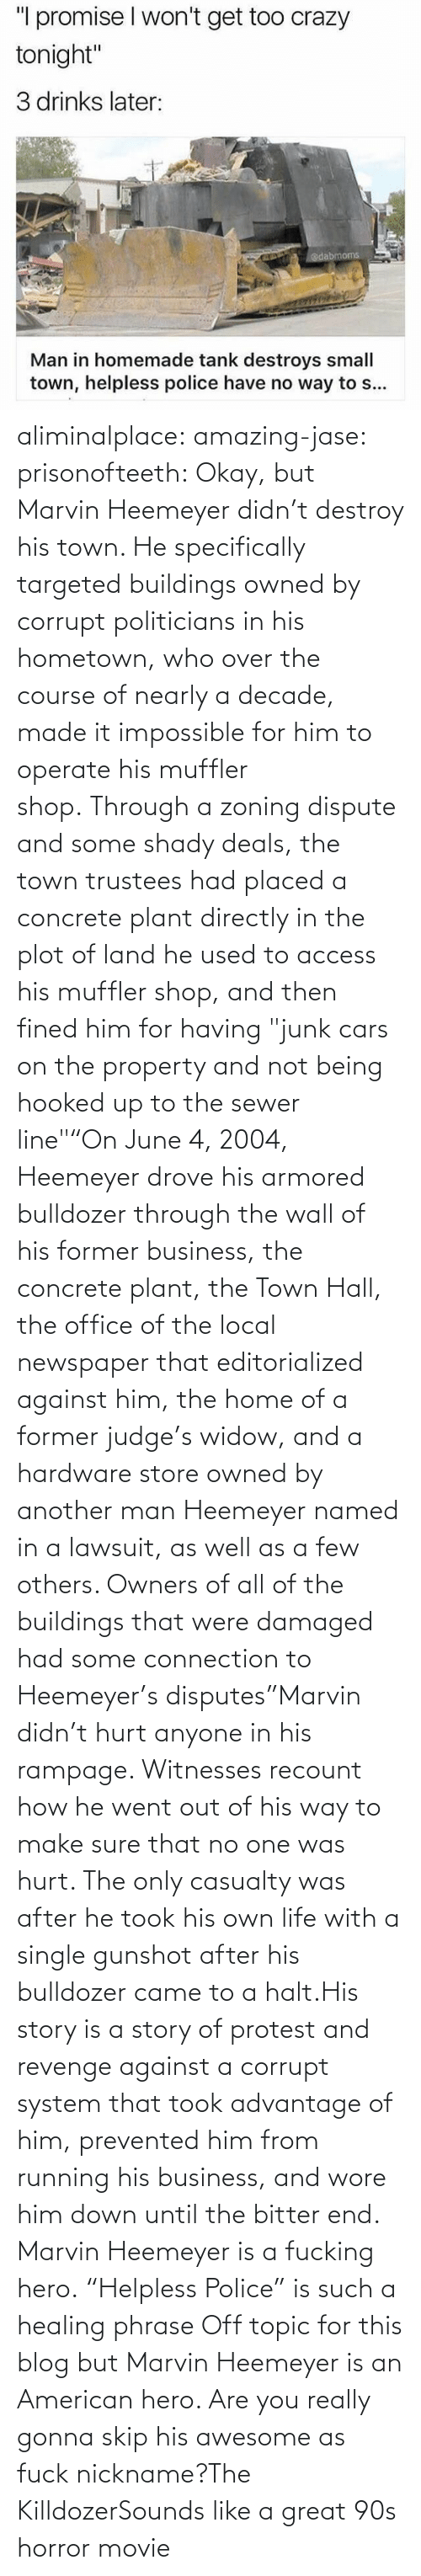 "are you: aliminalplace: amazing-jase:  prisonofteeth: Okay, but Marvin Heemeyer didn't destroy his town. He specifically targeted buildings owned by corrupt politicians in his hometown, who over the course of nearly a decade, made it impossible for him to operate his muffler shop. Through a zoning dispute and some shady deals, the town trustees had placed a concrete plant directly in the plot of land he used to access his muffler shop, and then fined him for having ""junk cars on the property and not being hooked up to the sewer line""""On June 4, 2004, Heemeyer drove his armored bulldozer through the wall of his former business, the concrete plant, the Town Hall, the office of the local newspaper that editorialized against him, the home of a former judge's widow, and a hardware store owned by another man Heemeyer named in a lawsuit, as well as a few others. Owners of all of the buildings that were damaged had some connection to Heemeyer's disputes""Marvin didn't hurt anyone in his rampage. Witnesses recount how he went out of his way to make sure that no one was hurt. The only casualty was after he took his own life with a single gunshot after his bulldozer came to a halt.His story is a story of protest and revenge against a corrupt system that took advantage of him, prevented him from running his business, and wore him down until the bitter end. Marvin Heemeyer is a fucking hero. ""Helpless Police"" is such a healing phrase    Off topic for this blog but Marvin Heemeyer is an American hero.     Are you really gonna skip his awesome as fuck nickname?The KilldozerSounds like a great 90s horror movie"